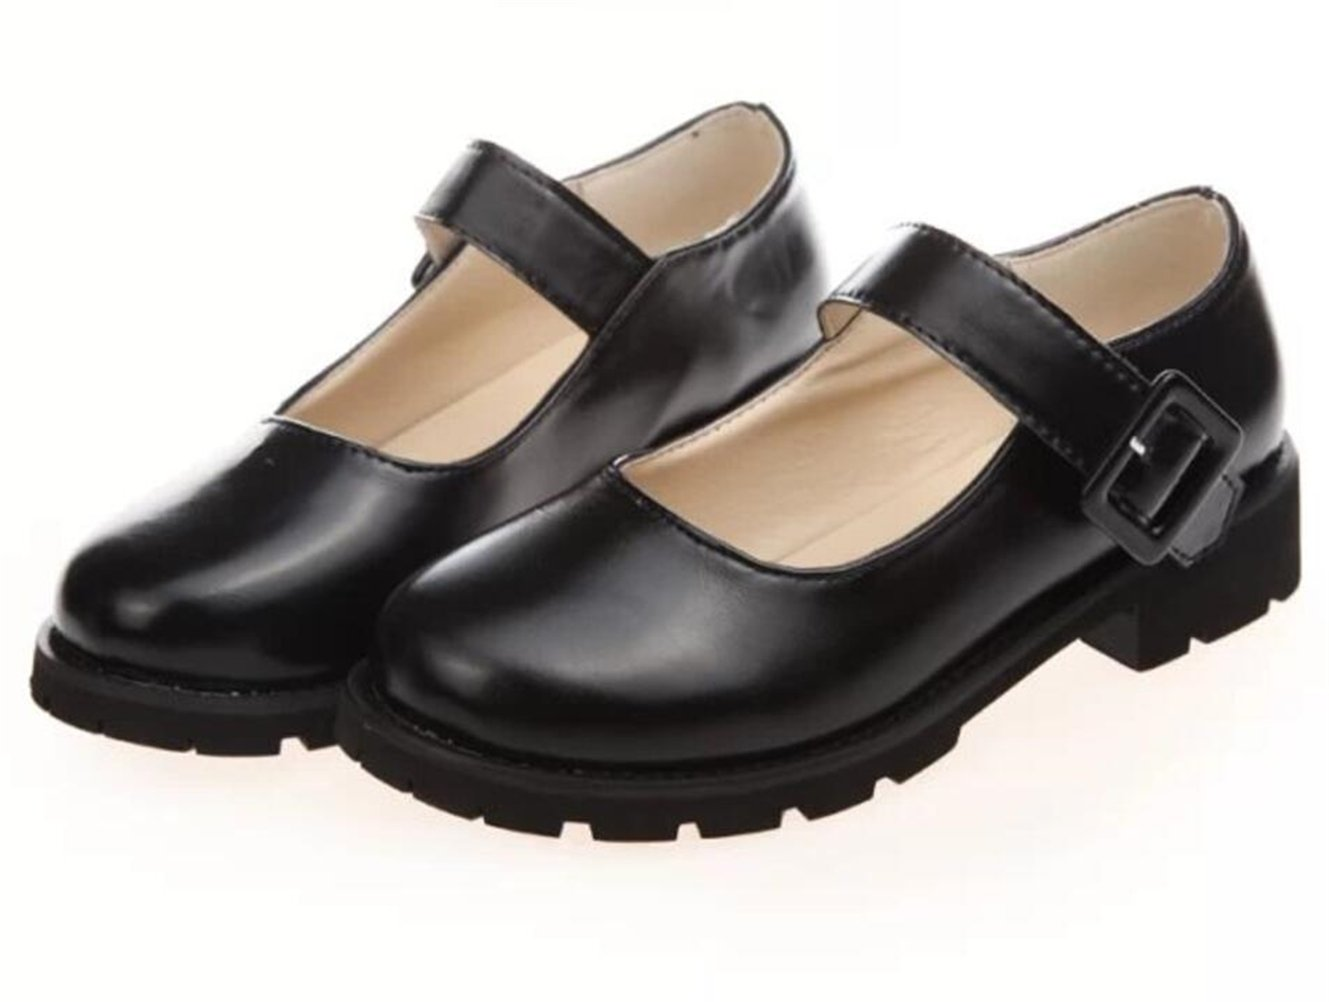 ACE SHOCK Women's Girl's Lolita Low Top Japanese Students Maid Uniform Dress Shoes (5.5, Black) by ACE SHOCK (Image #9)